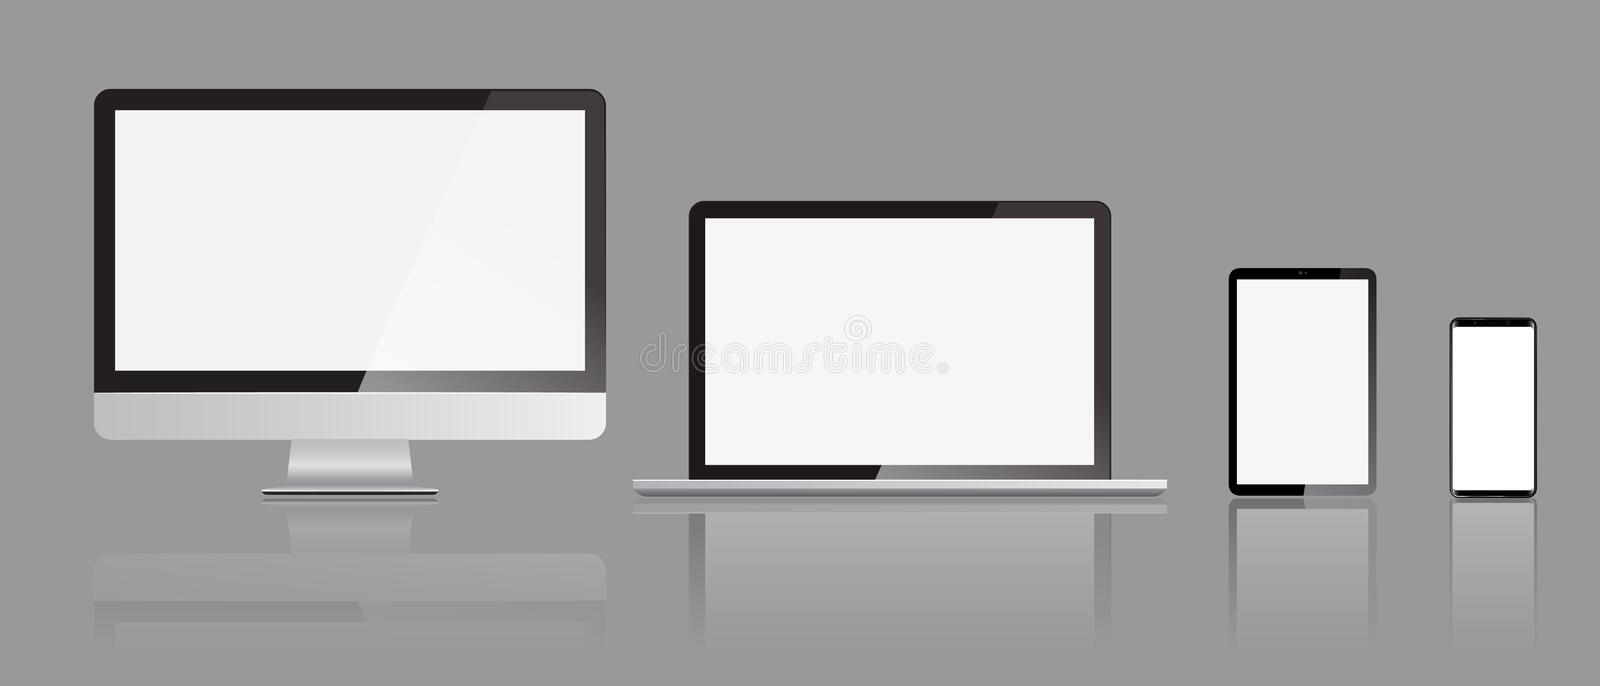 Set of realistic Monitors laptop tablet and smartphone display mockups with front view. Vector illustration. stock illustration